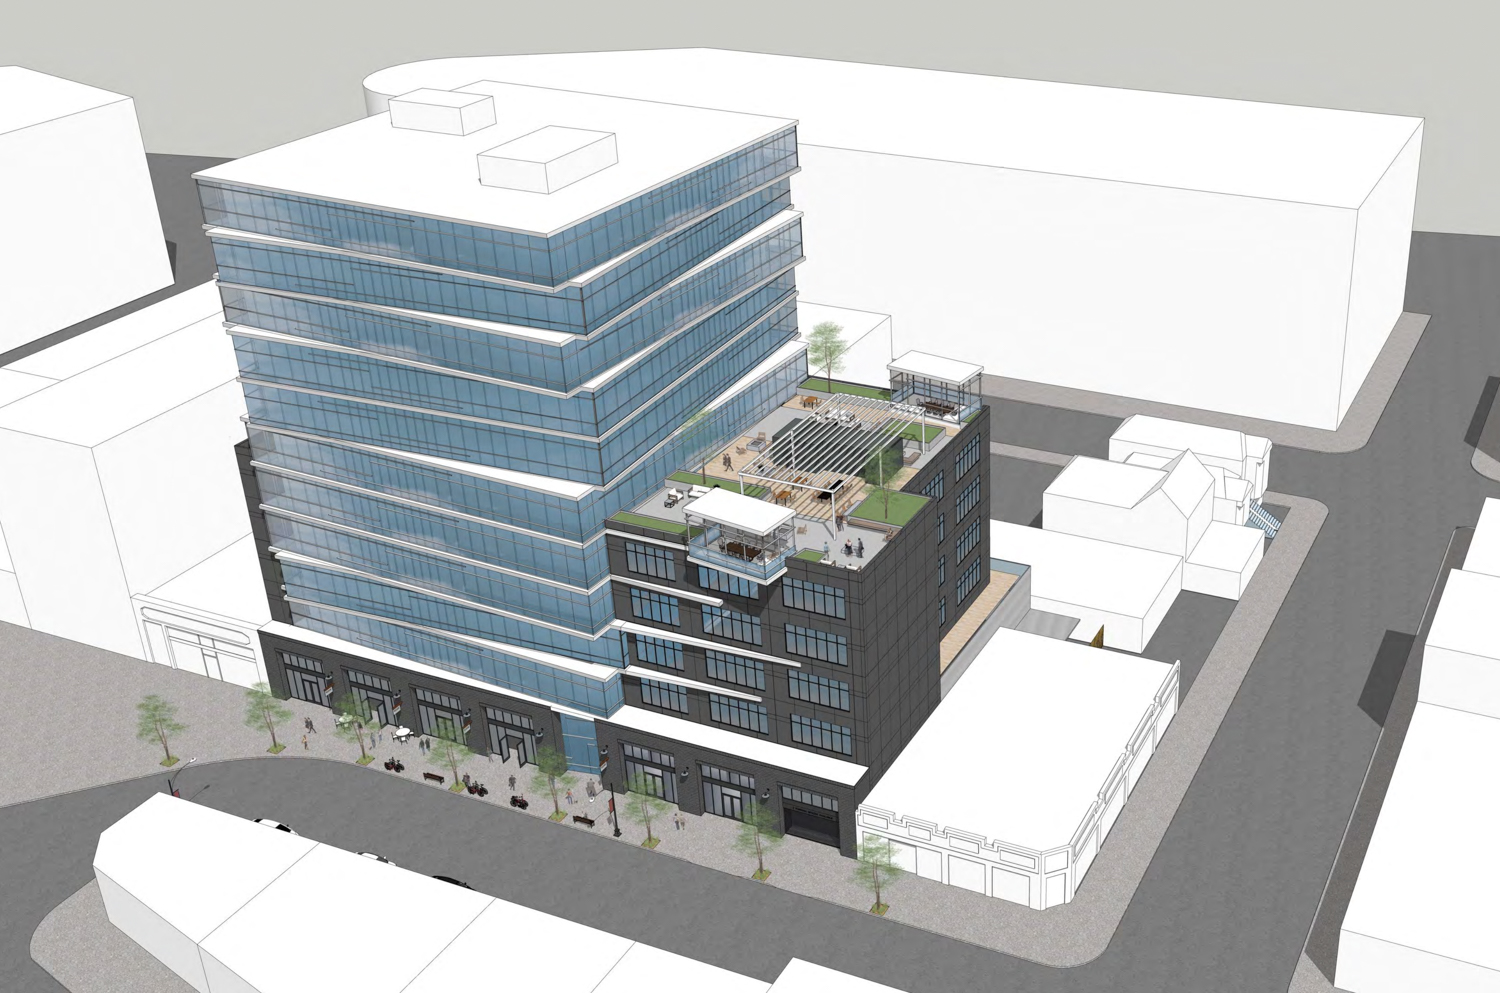 2424 Webster Street birdseye view, rendering by Flynn Architecture